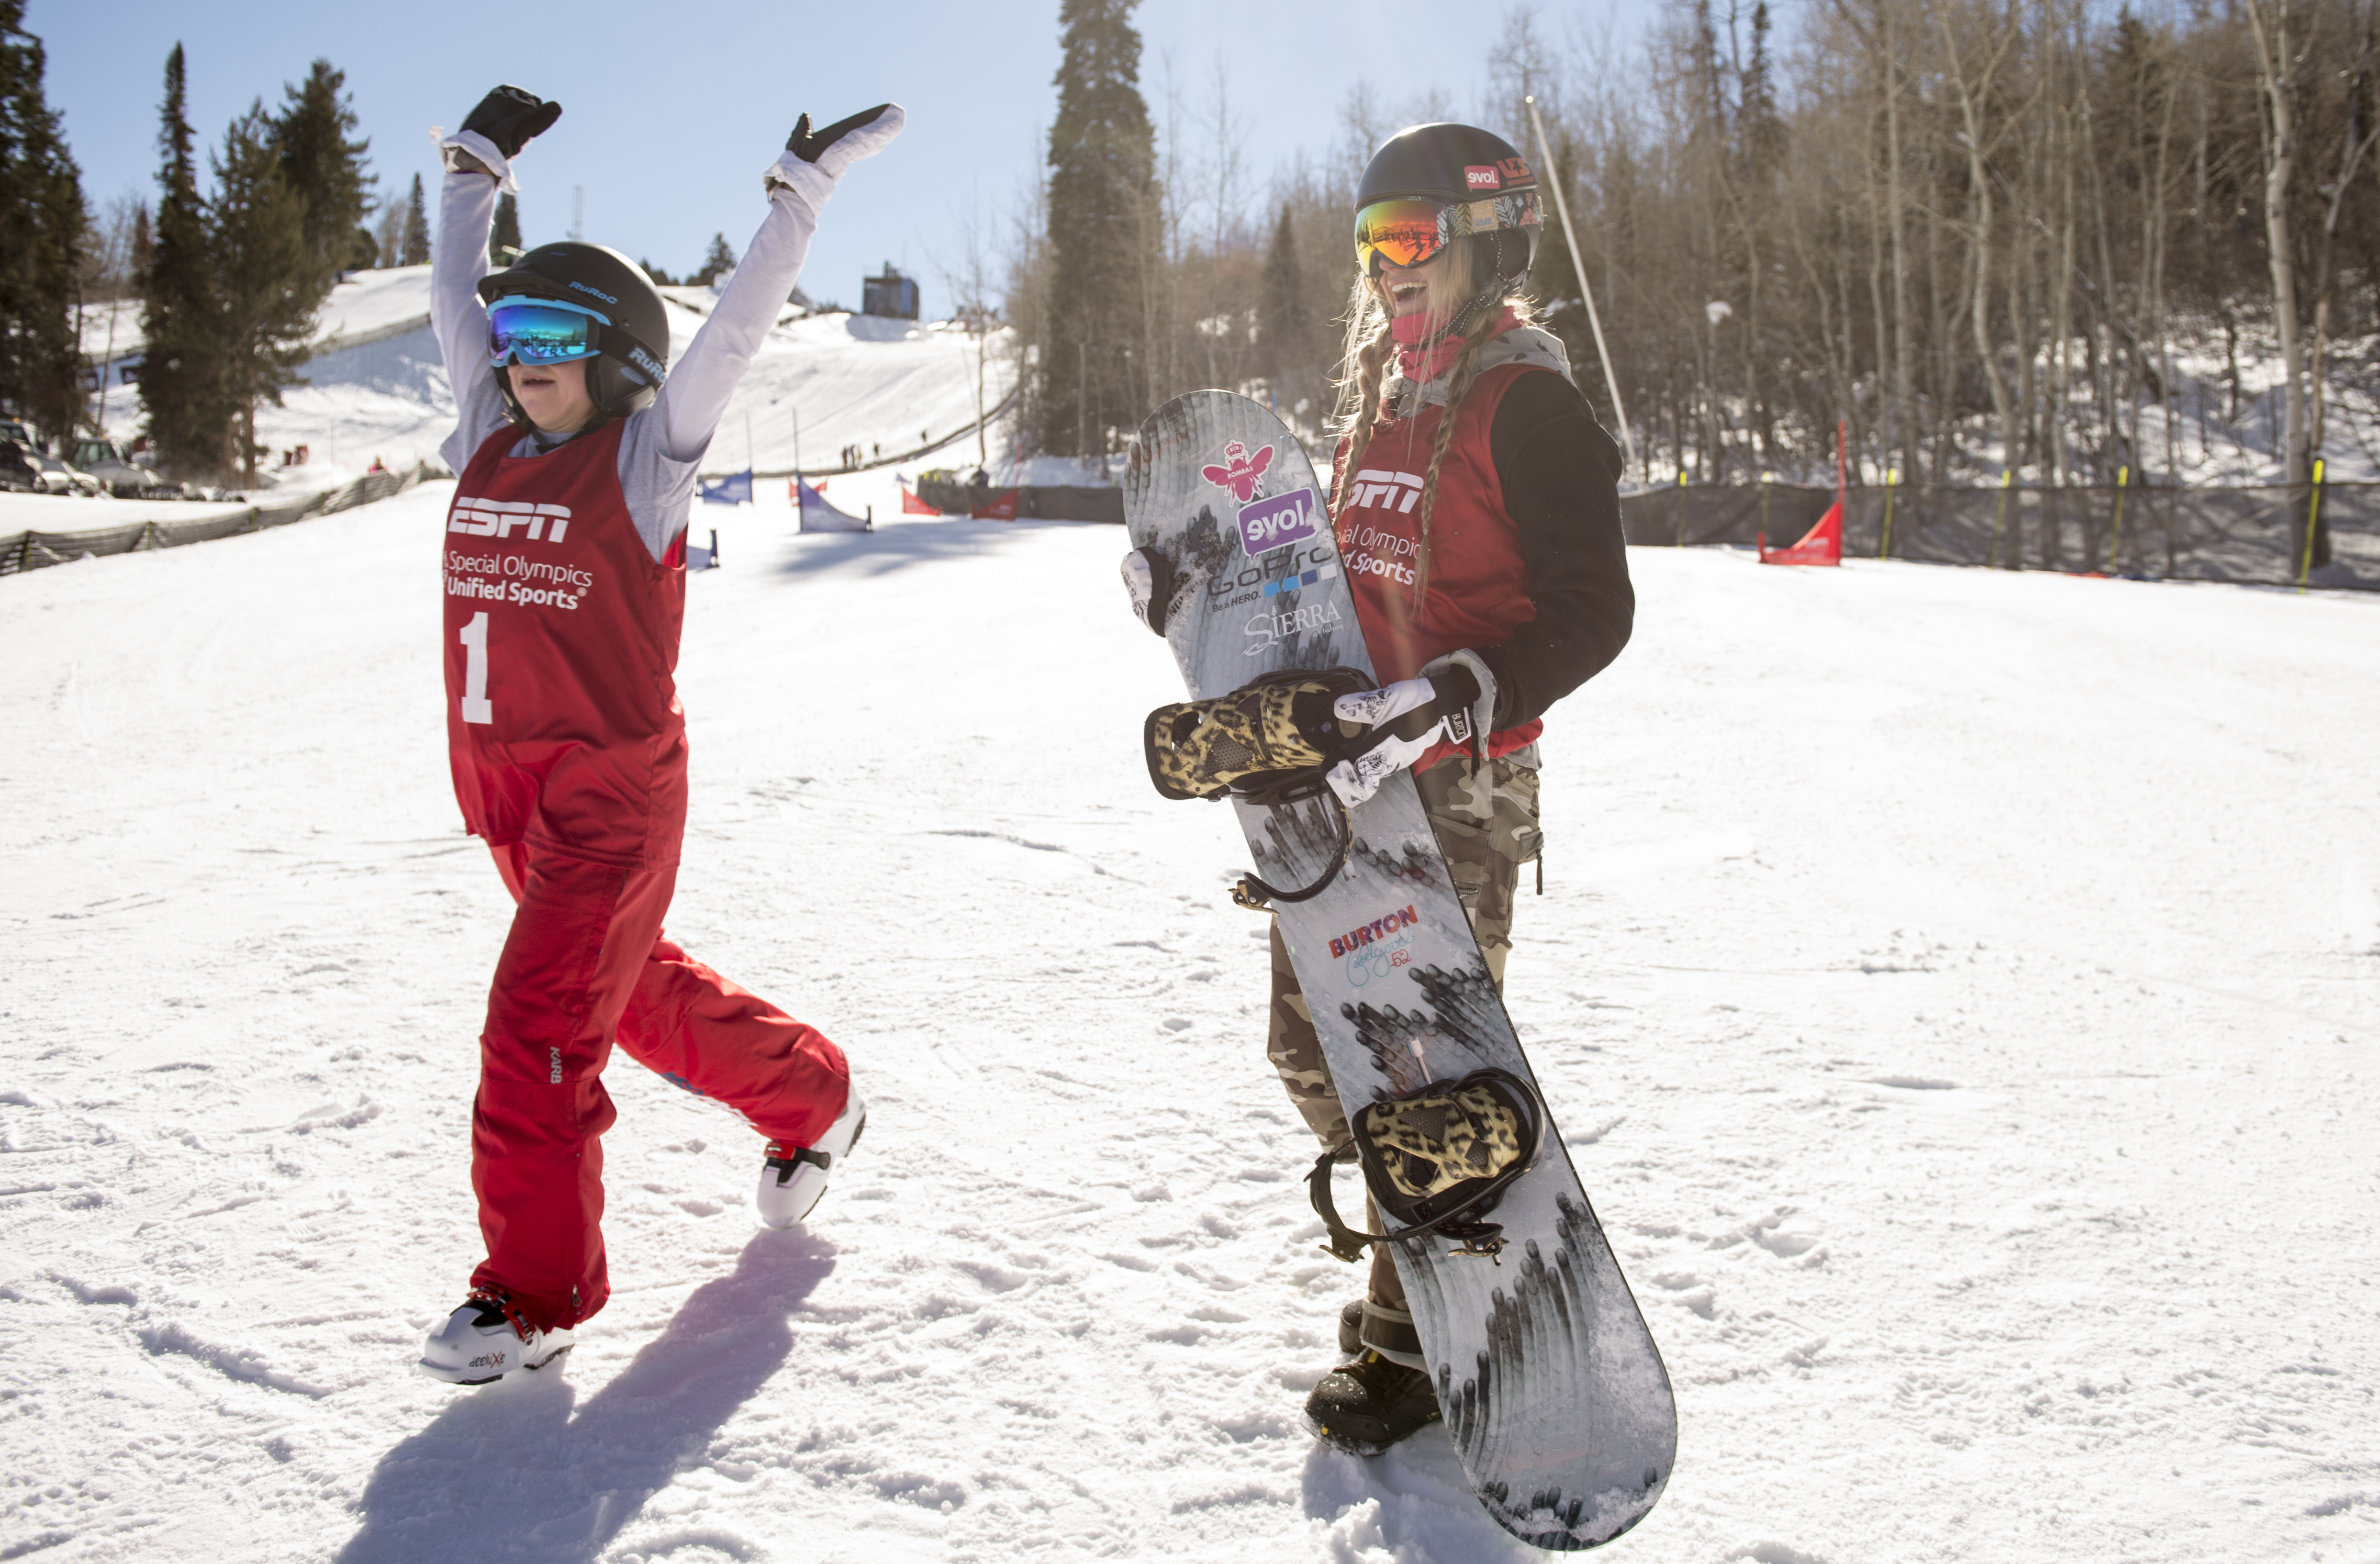 Special Olympics Unified Snowboarding Dual Slalom